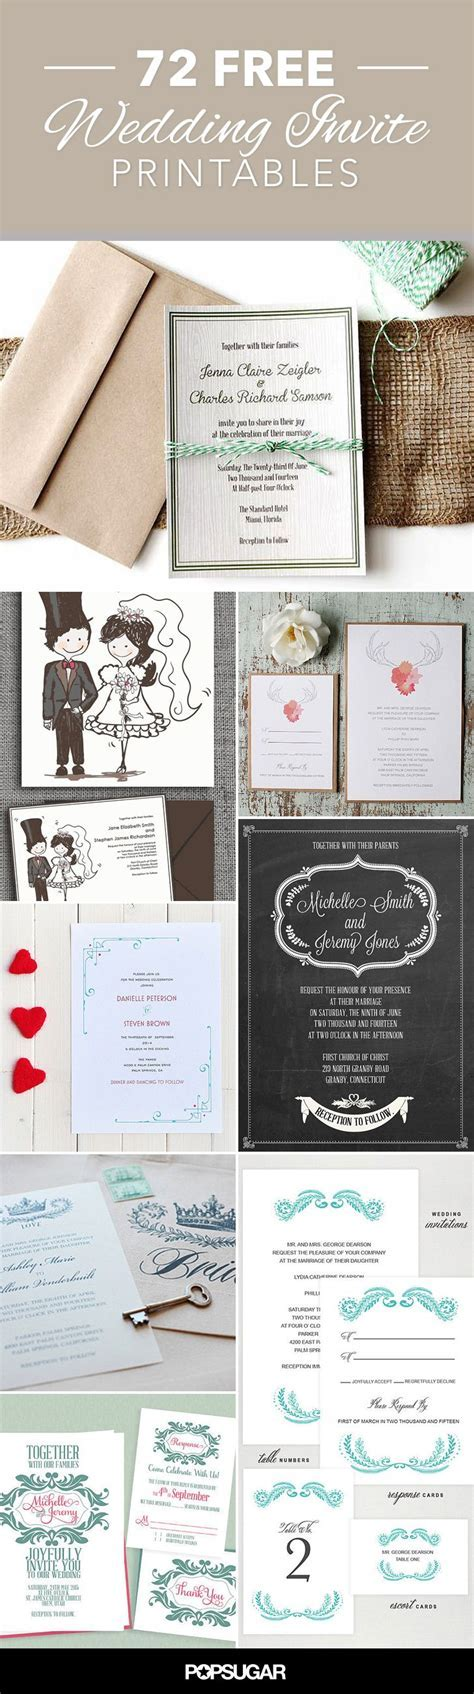 72 Beautiful Wedding Invite Printables to Download For